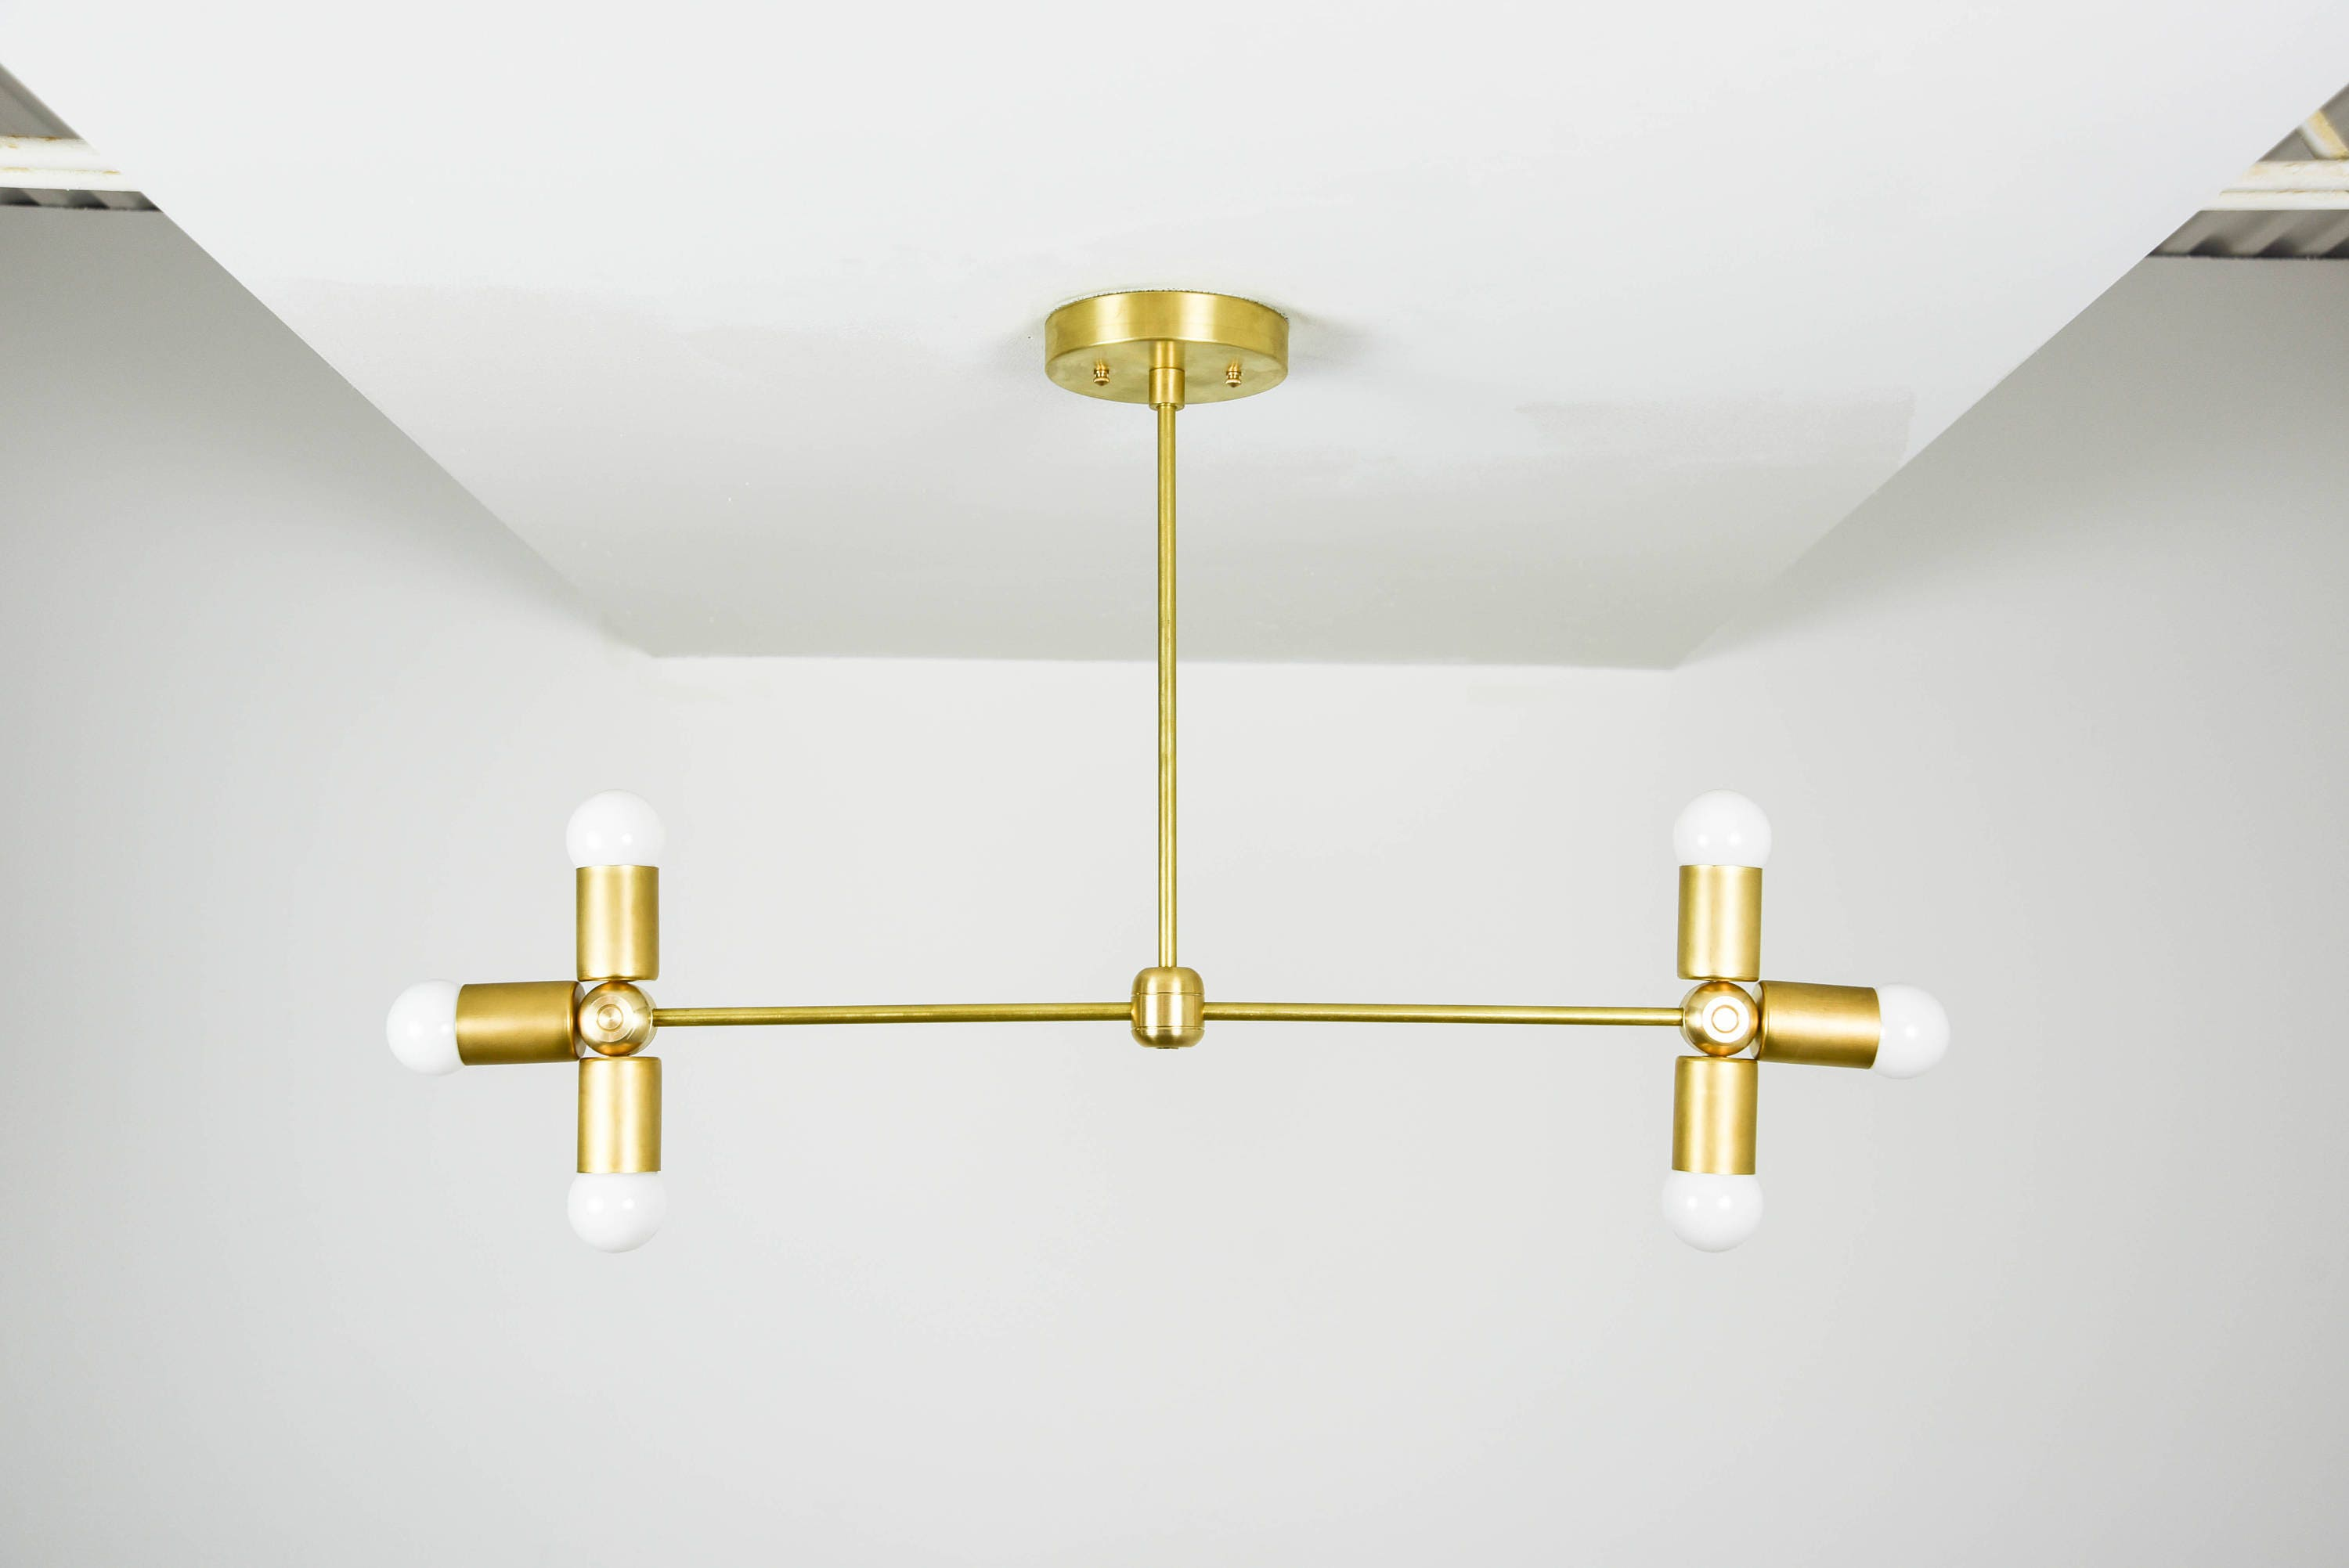 Wall Sconce Vanity 6 Light Wall Sconce Gold Raw Brass 6 Bulb Modern ...